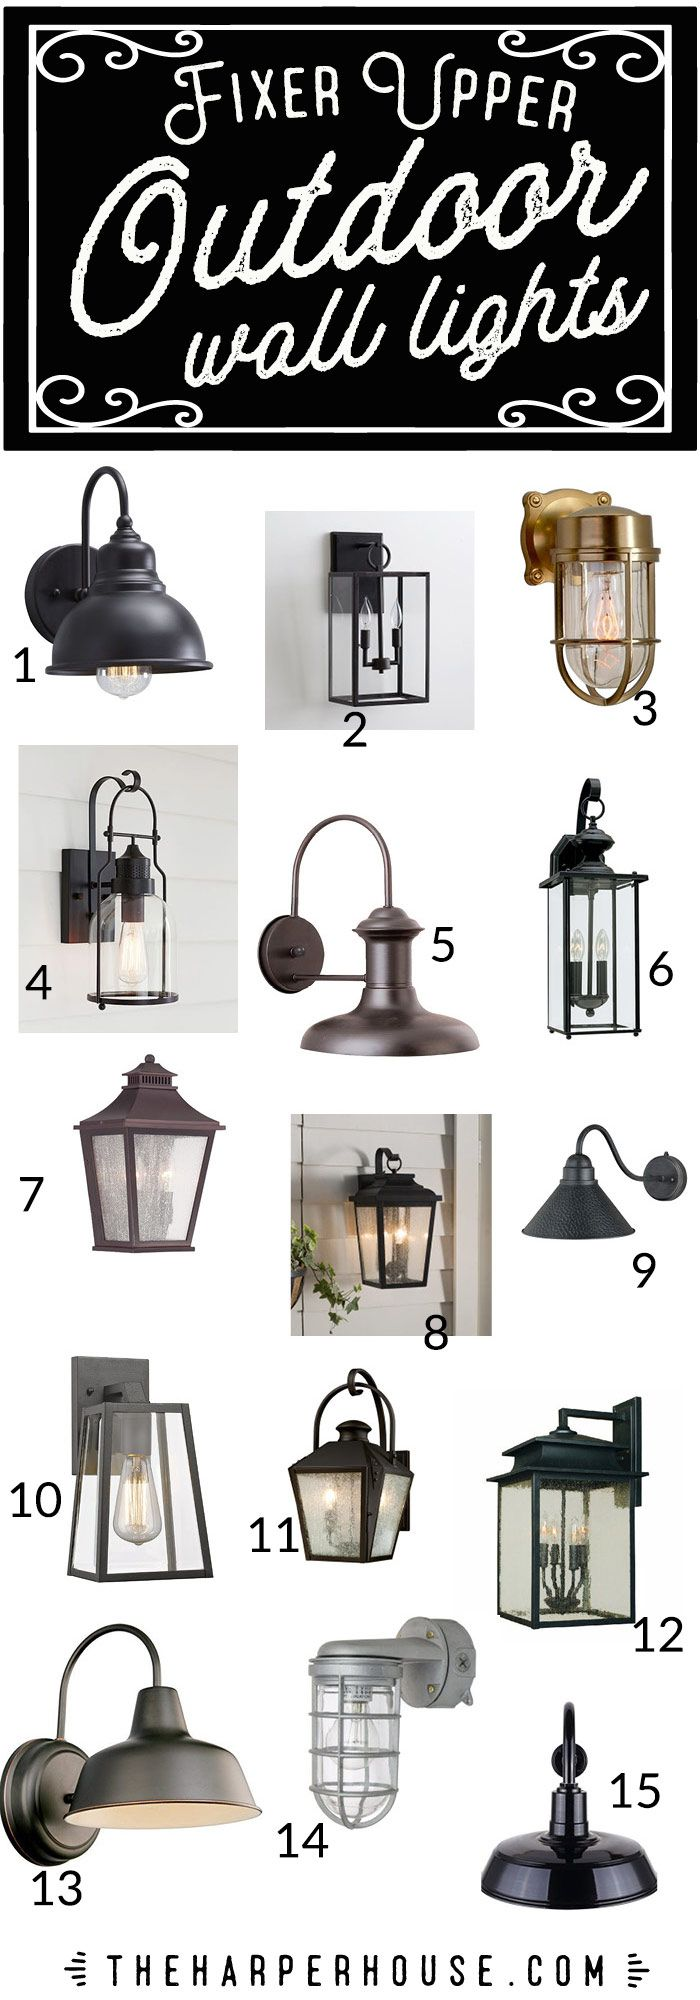 Outdoor Wall Lights Fixer Upper Style Best Of The Harper